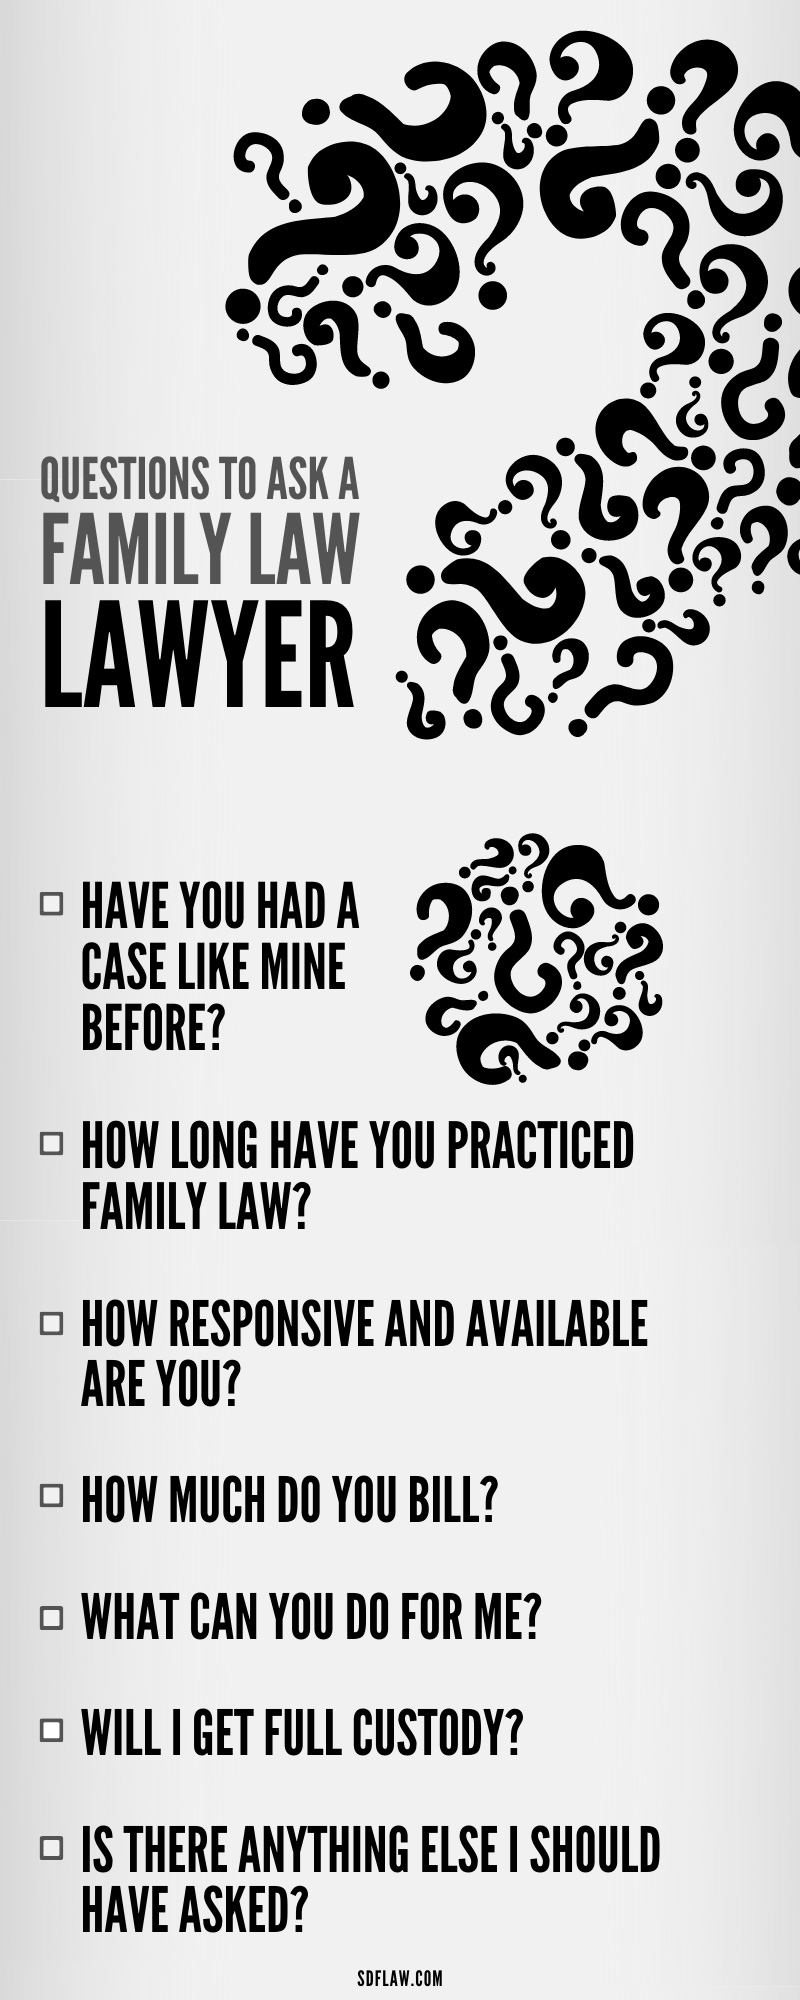 Questions To Ask a Family Law Lawyer